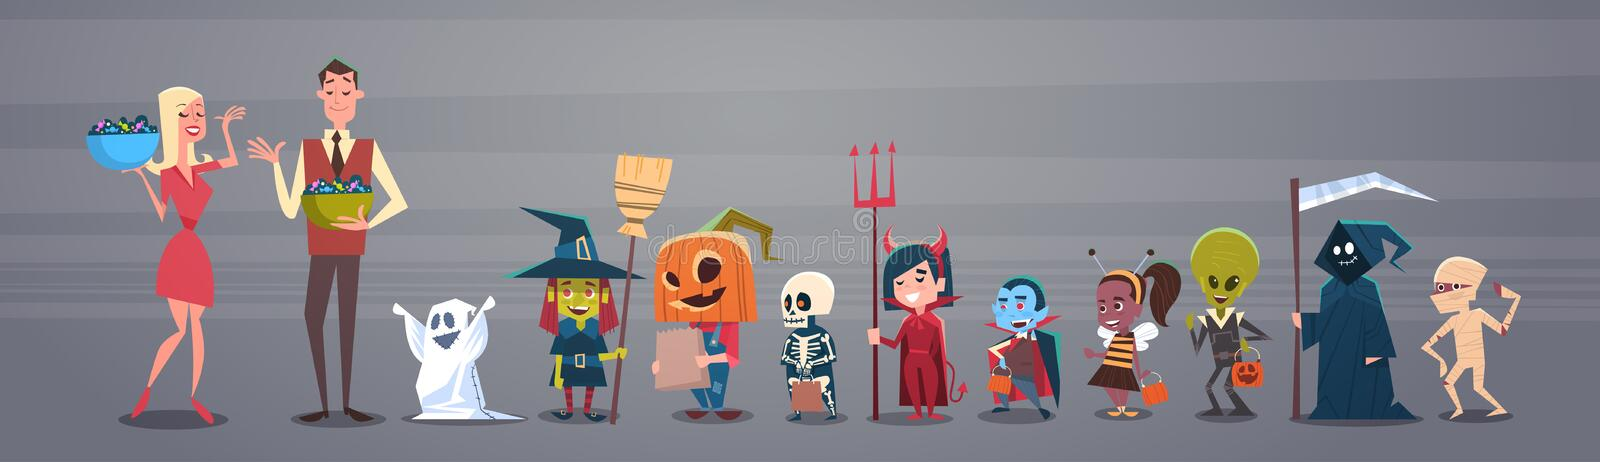 Happy Halloween Banner Holiday Decoration Horror Party Greeting Card Man And Woman Giving Candy To Cute Cartoon Monsters stock illustration